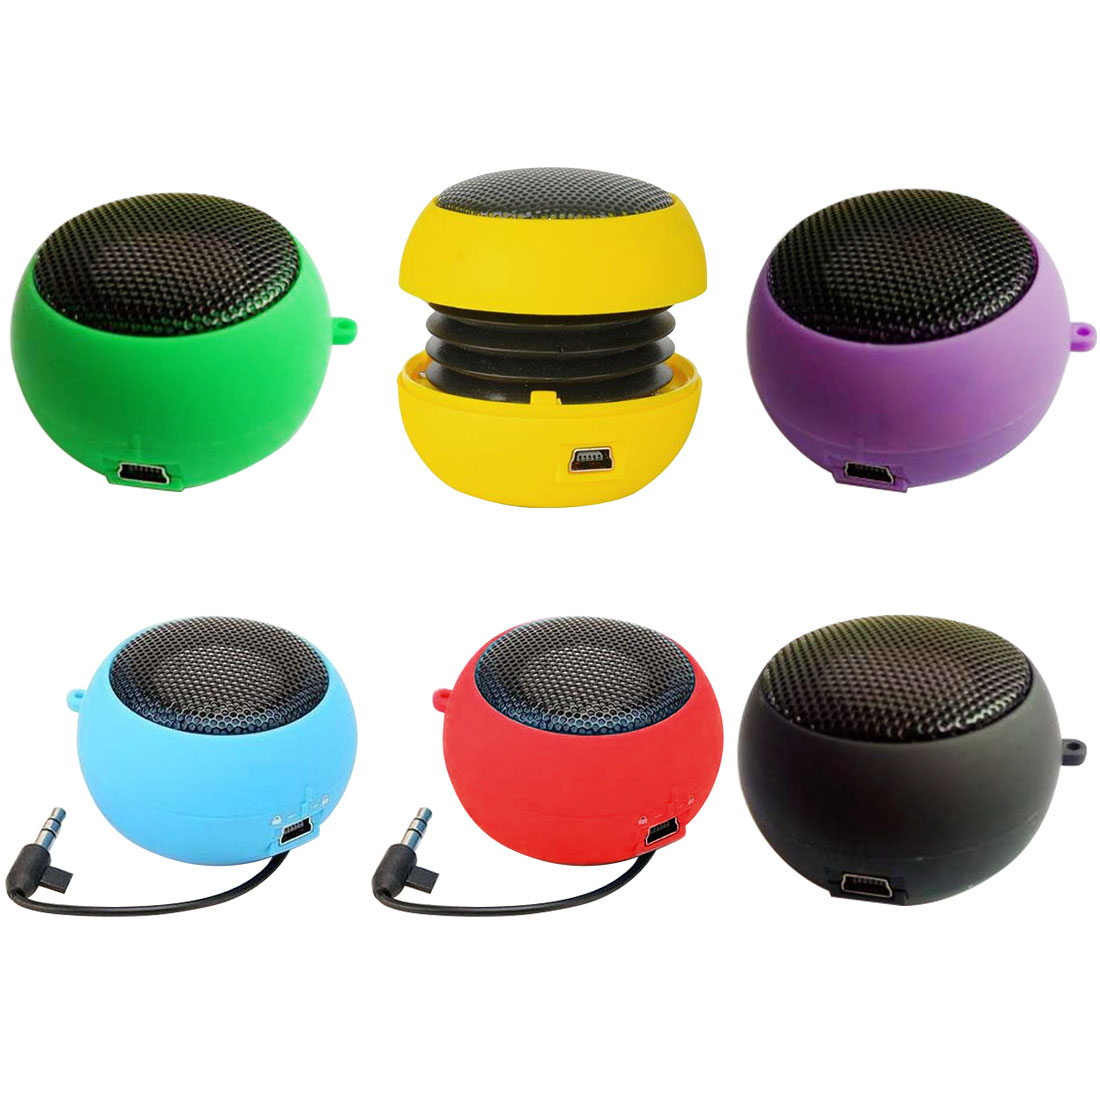 Fashion Cute Mini Speaker Mp3 Music Loudspeaker Player Outdoor 3.5mm Portable Wired Speaker Sound Box for Computer Phones